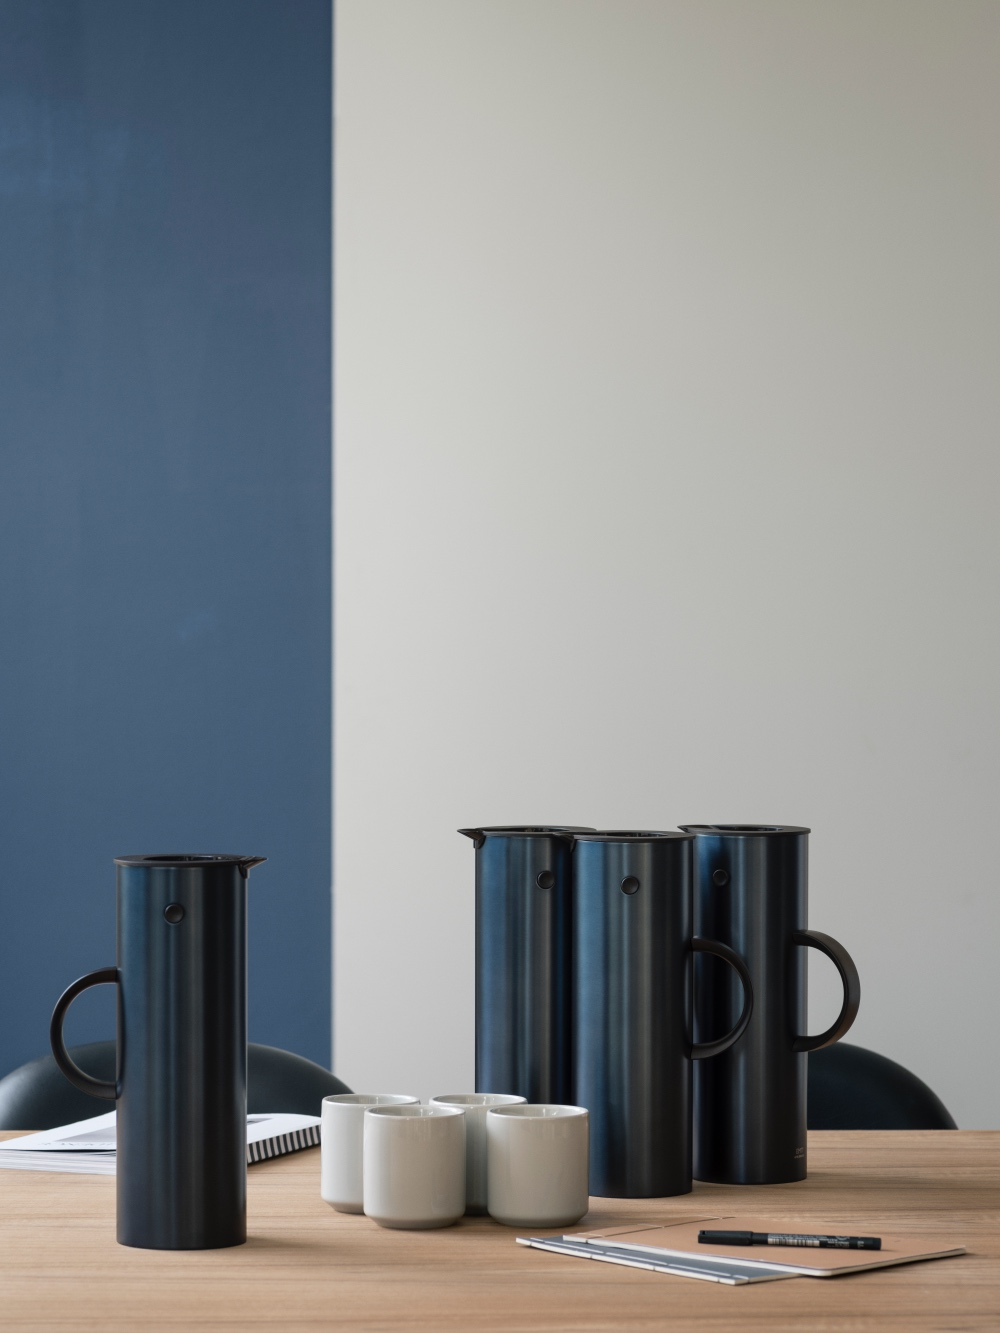 stelton em77 isolierkanne 1l steel dark blue metallic isolierkannen kaffee. Black Bedroom Furniture Sets. Home Design Ideas